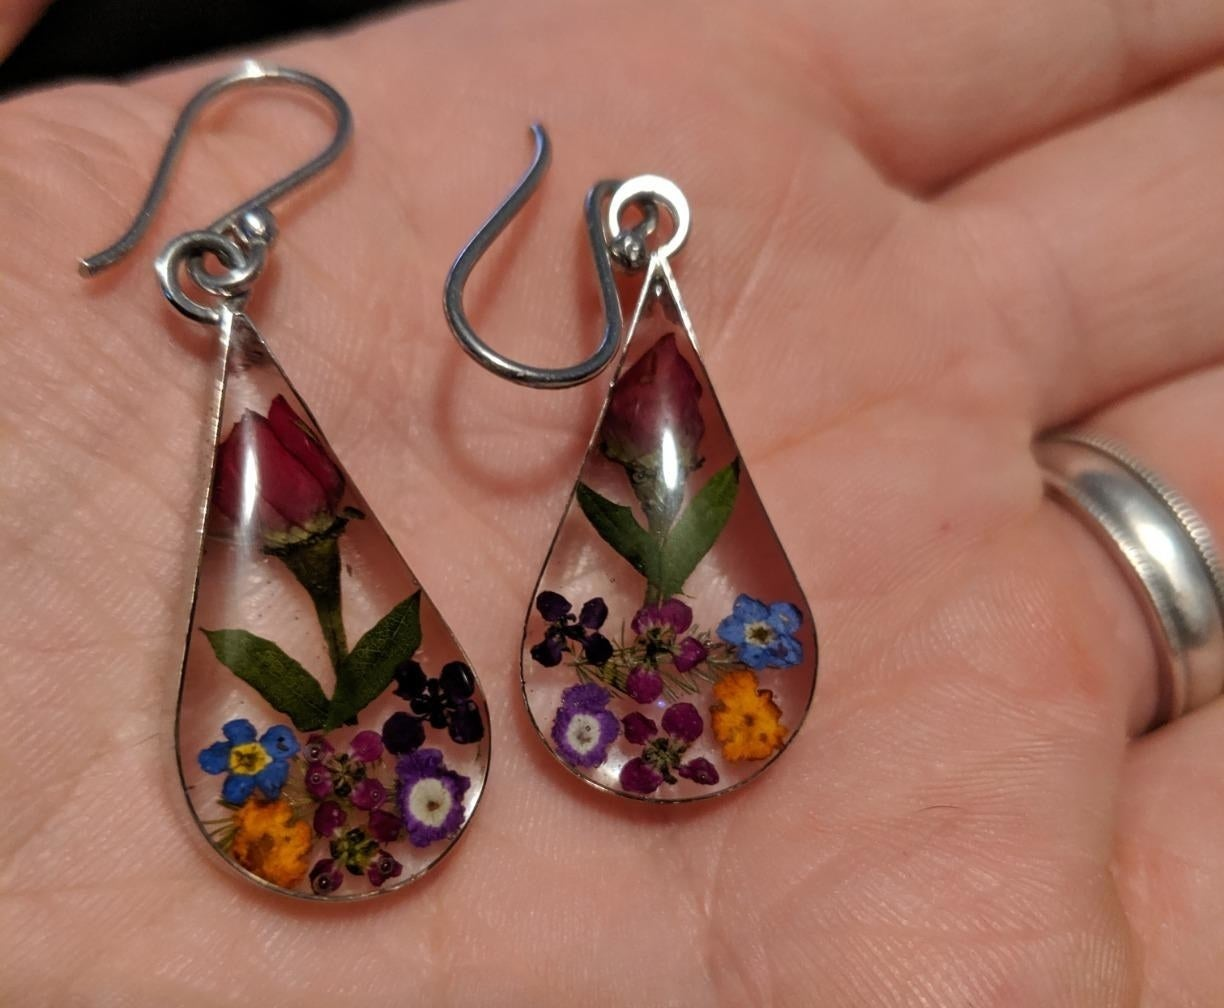 Review photo of the multi-colored earrings